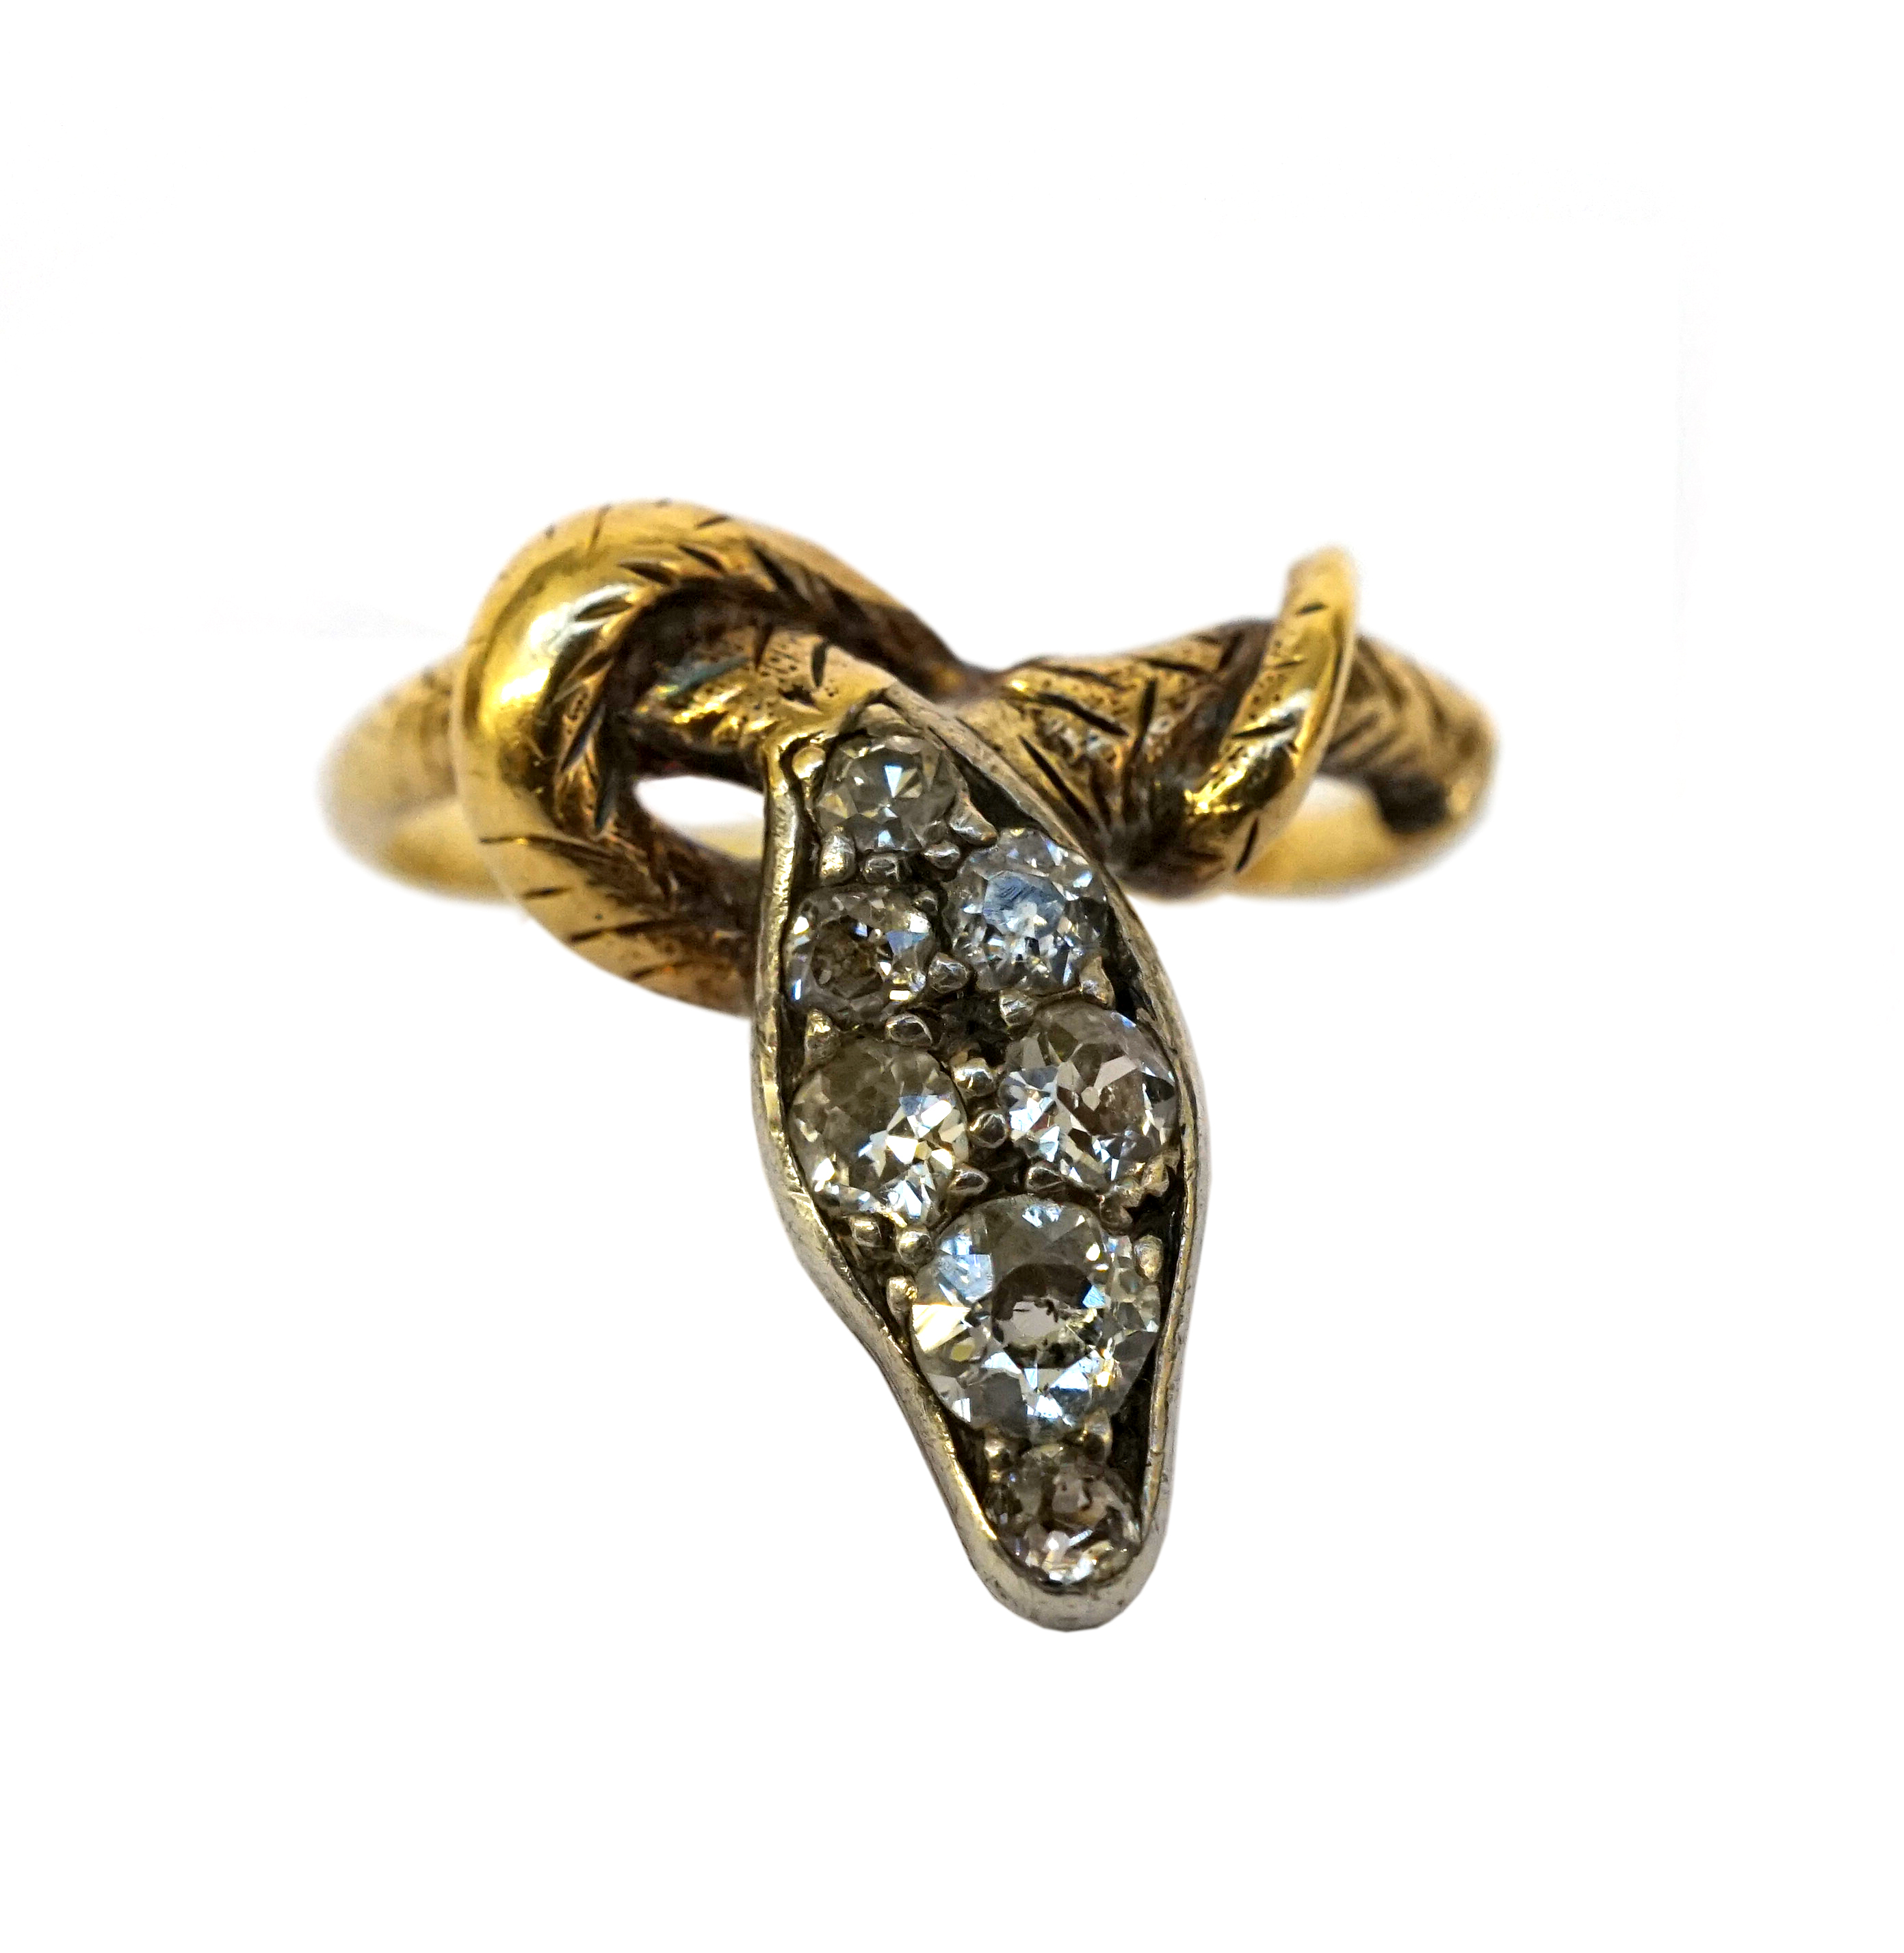 Mariad Antiques at Grays - 18ct diamond snake ring, 1860, £750